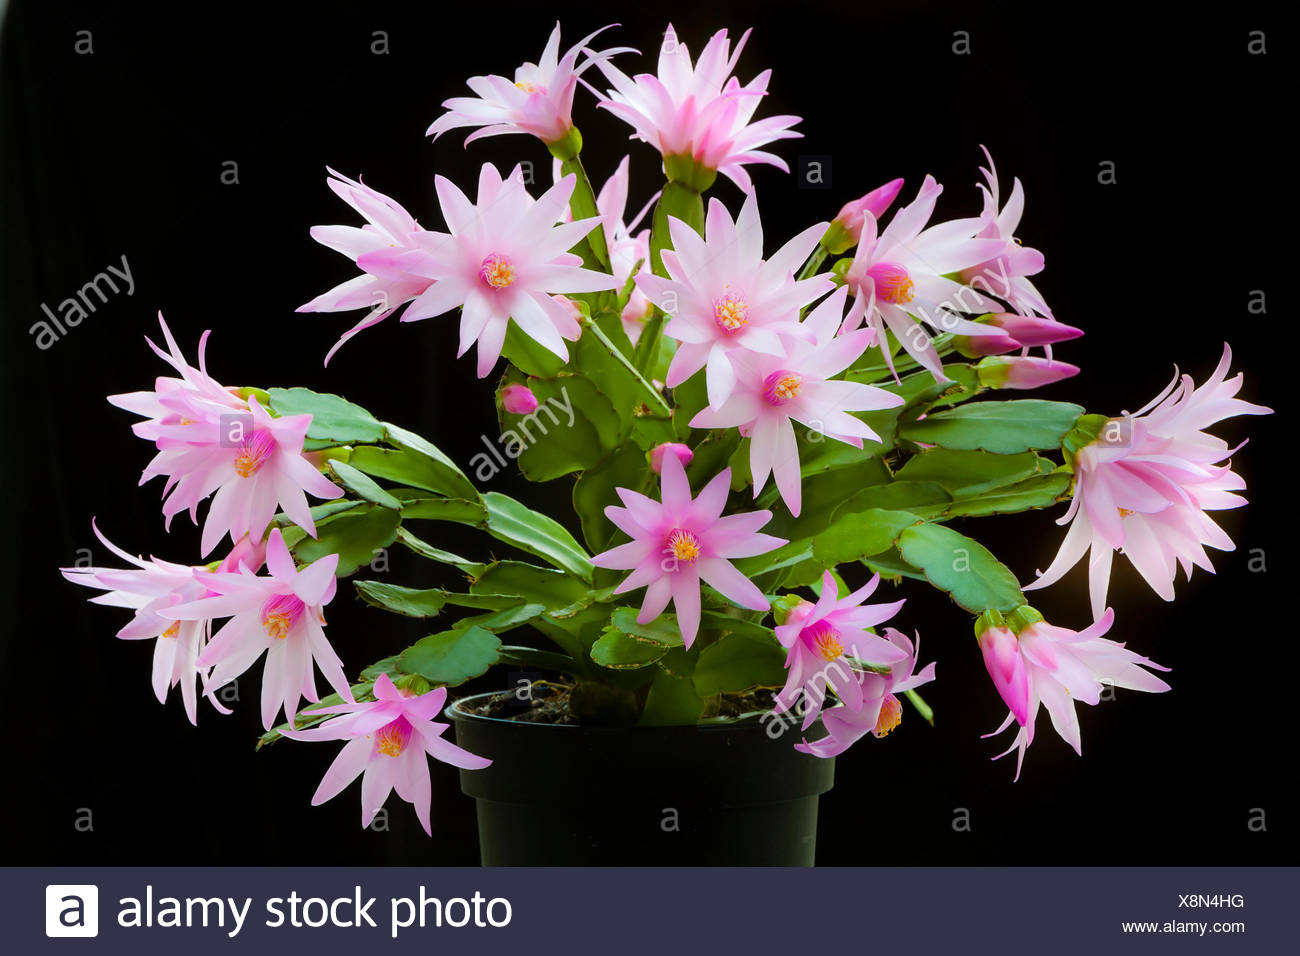 Black flower centre stamen stock photos black flower centre stamen rose easter cactus rhipsalidopsis rosea a plant in a black pot covered with mightylinksfo